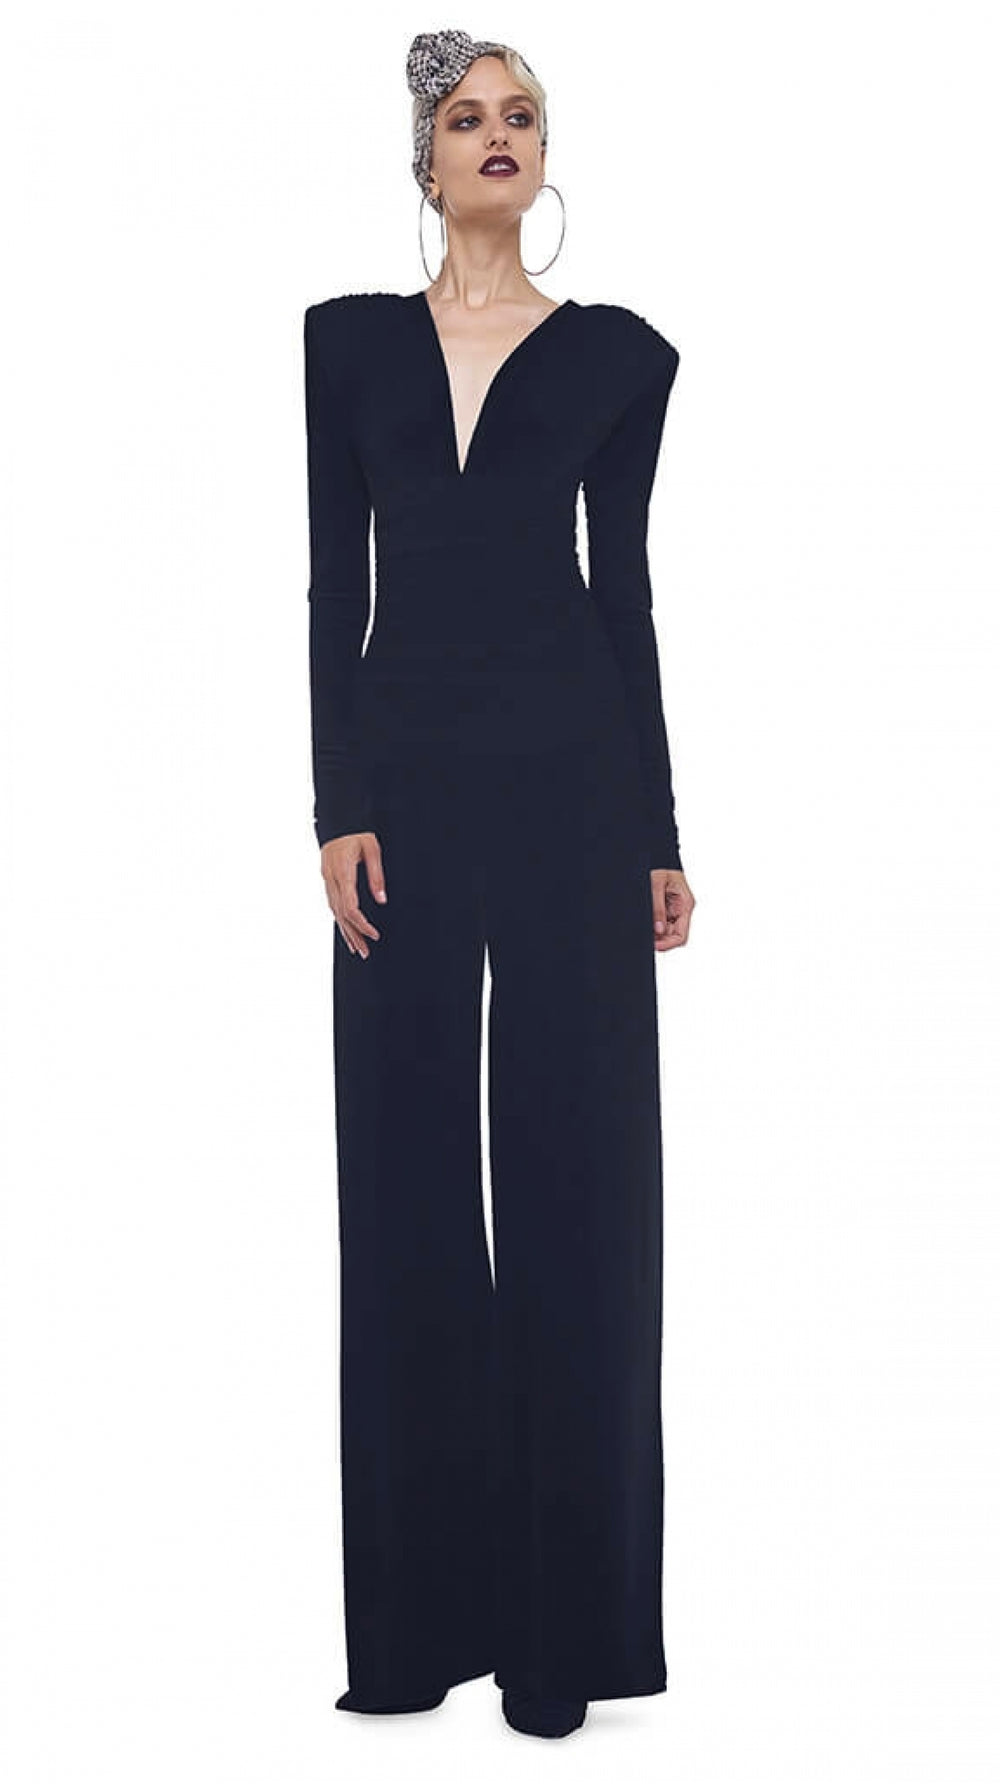 V NECK L/S SHIRRED WAIST JUMPSUIT W/ SHOULDER PADS - 1